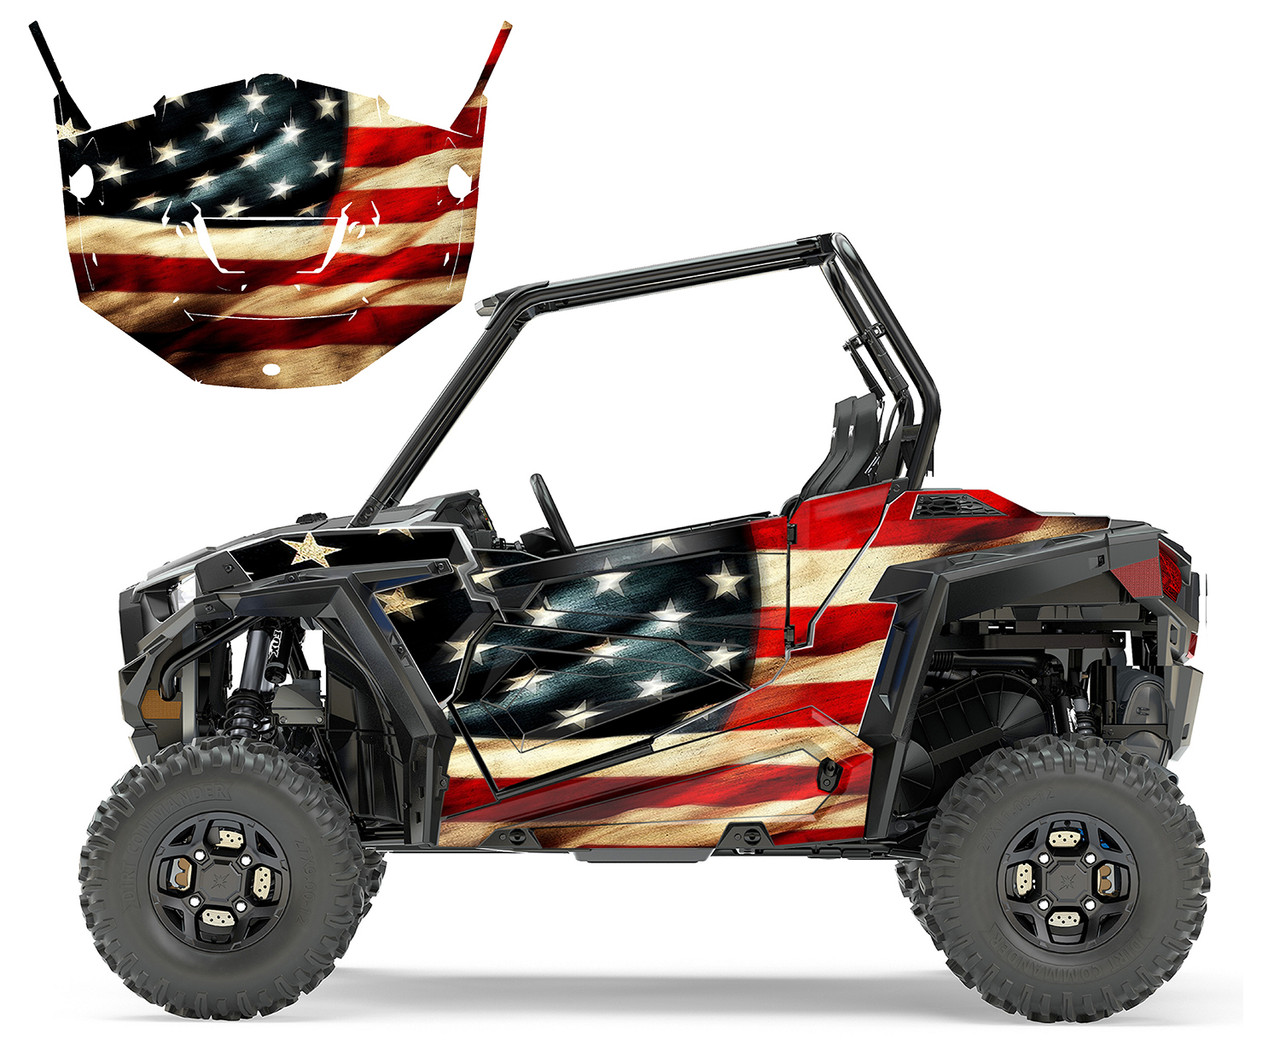 2015-2018 Polaris RZR 800 graphics wrap kit with Tattered American Flag design